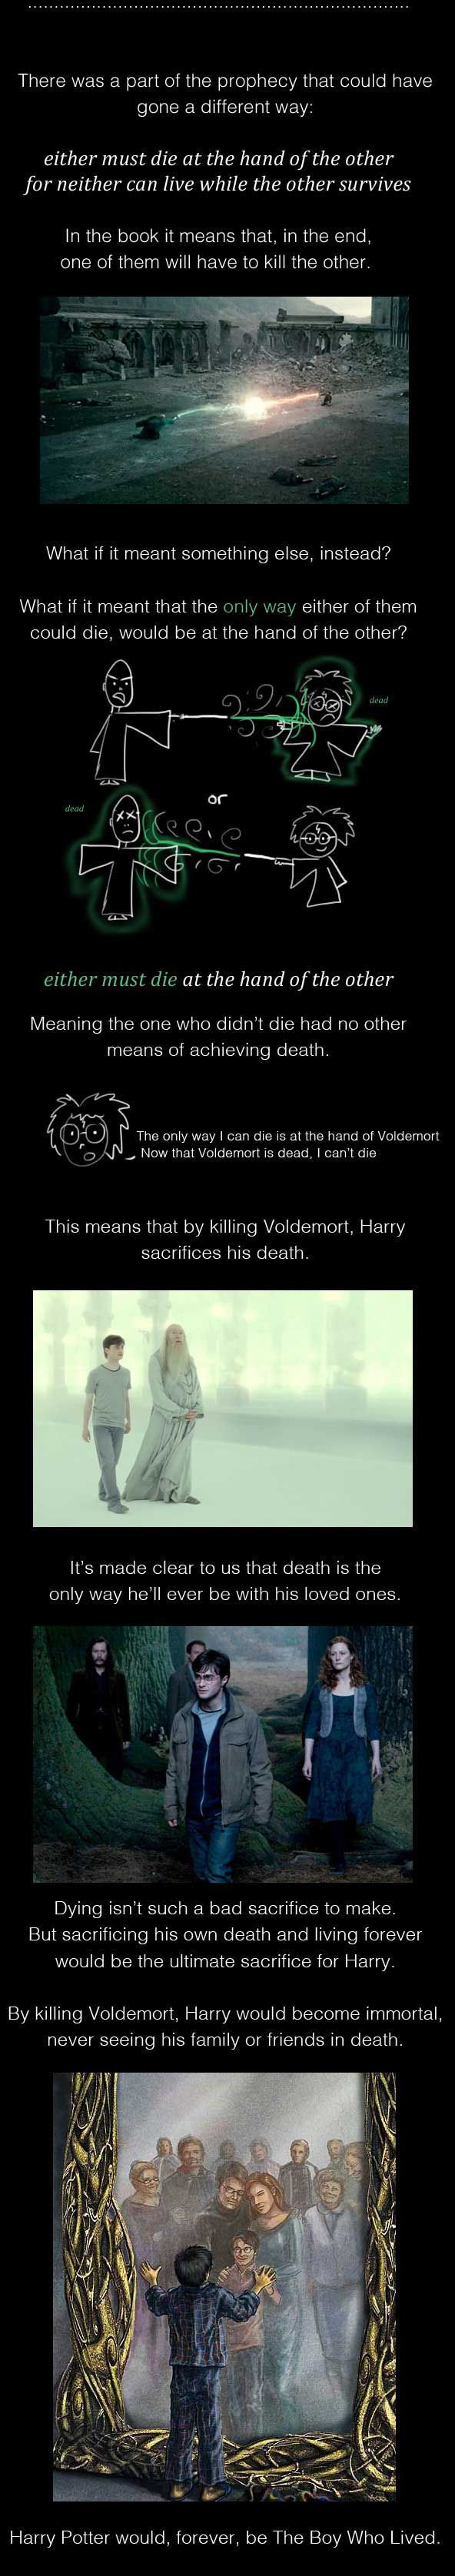 Harry Potter Alternated Ending! Holy fuck ... oh my god could it be?